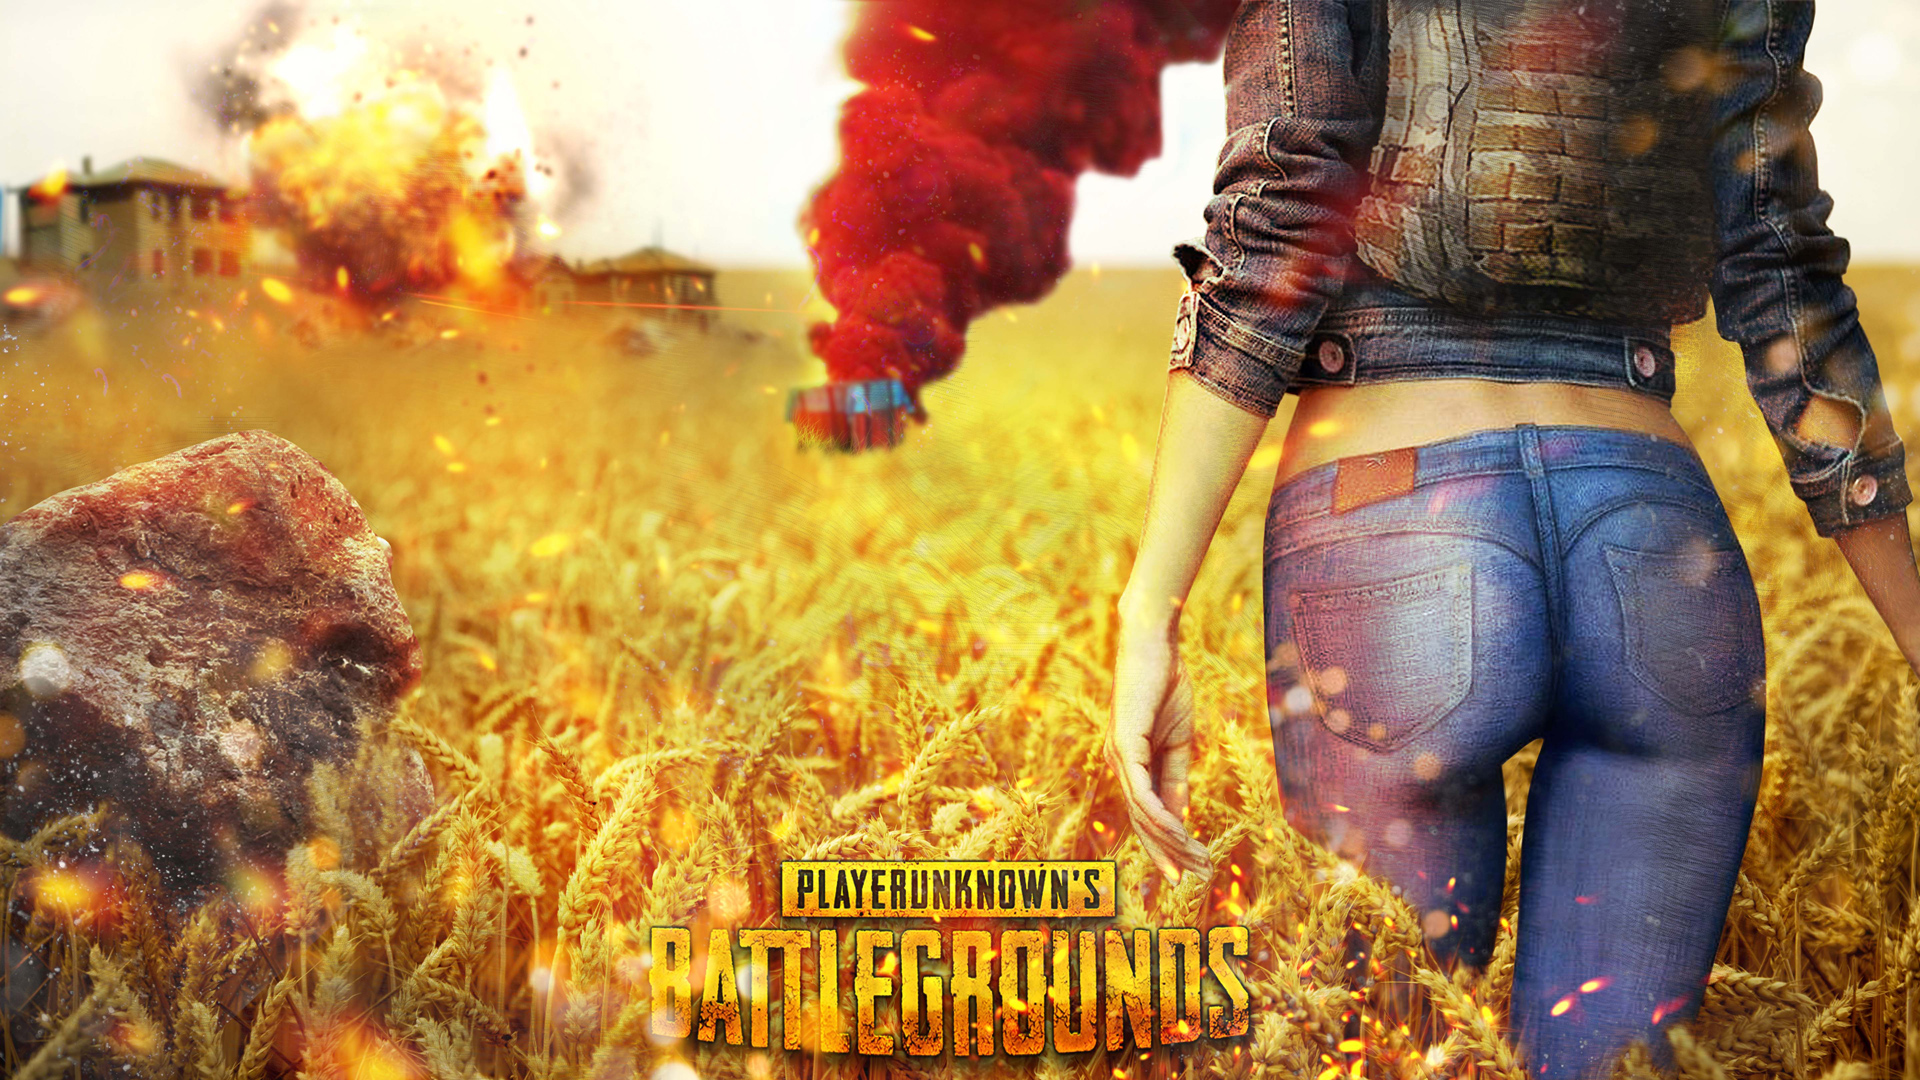 1920x1080 Playerunknowns Battlegrounds 1080P Laptop Full